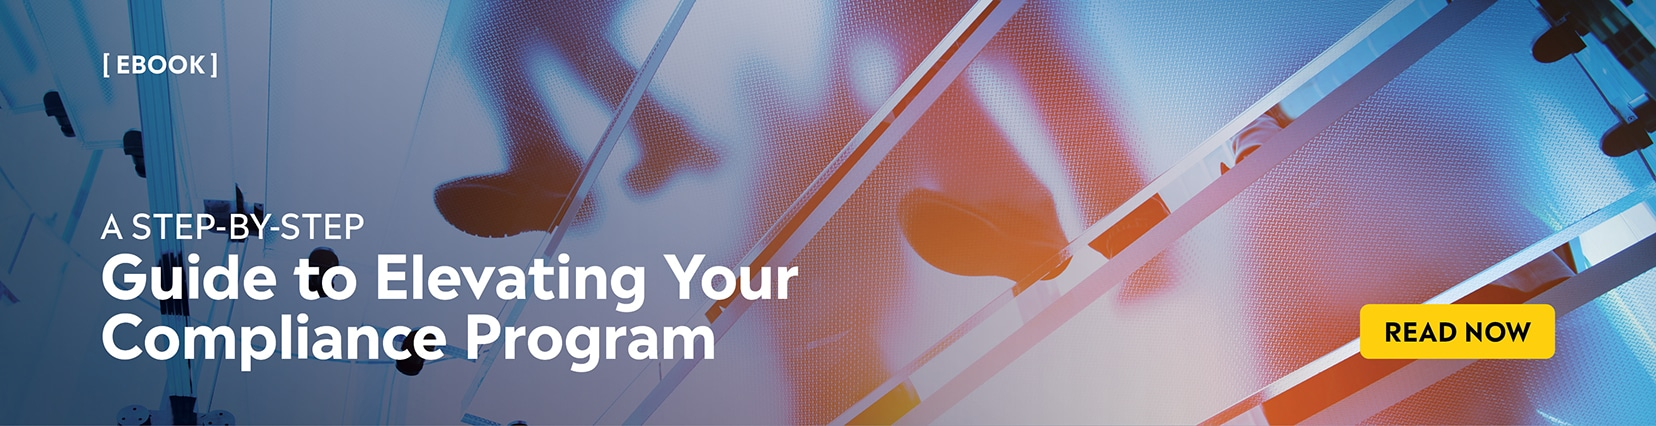 Blog CTA - ebook: A Guide to Elevating Your Compliance Program